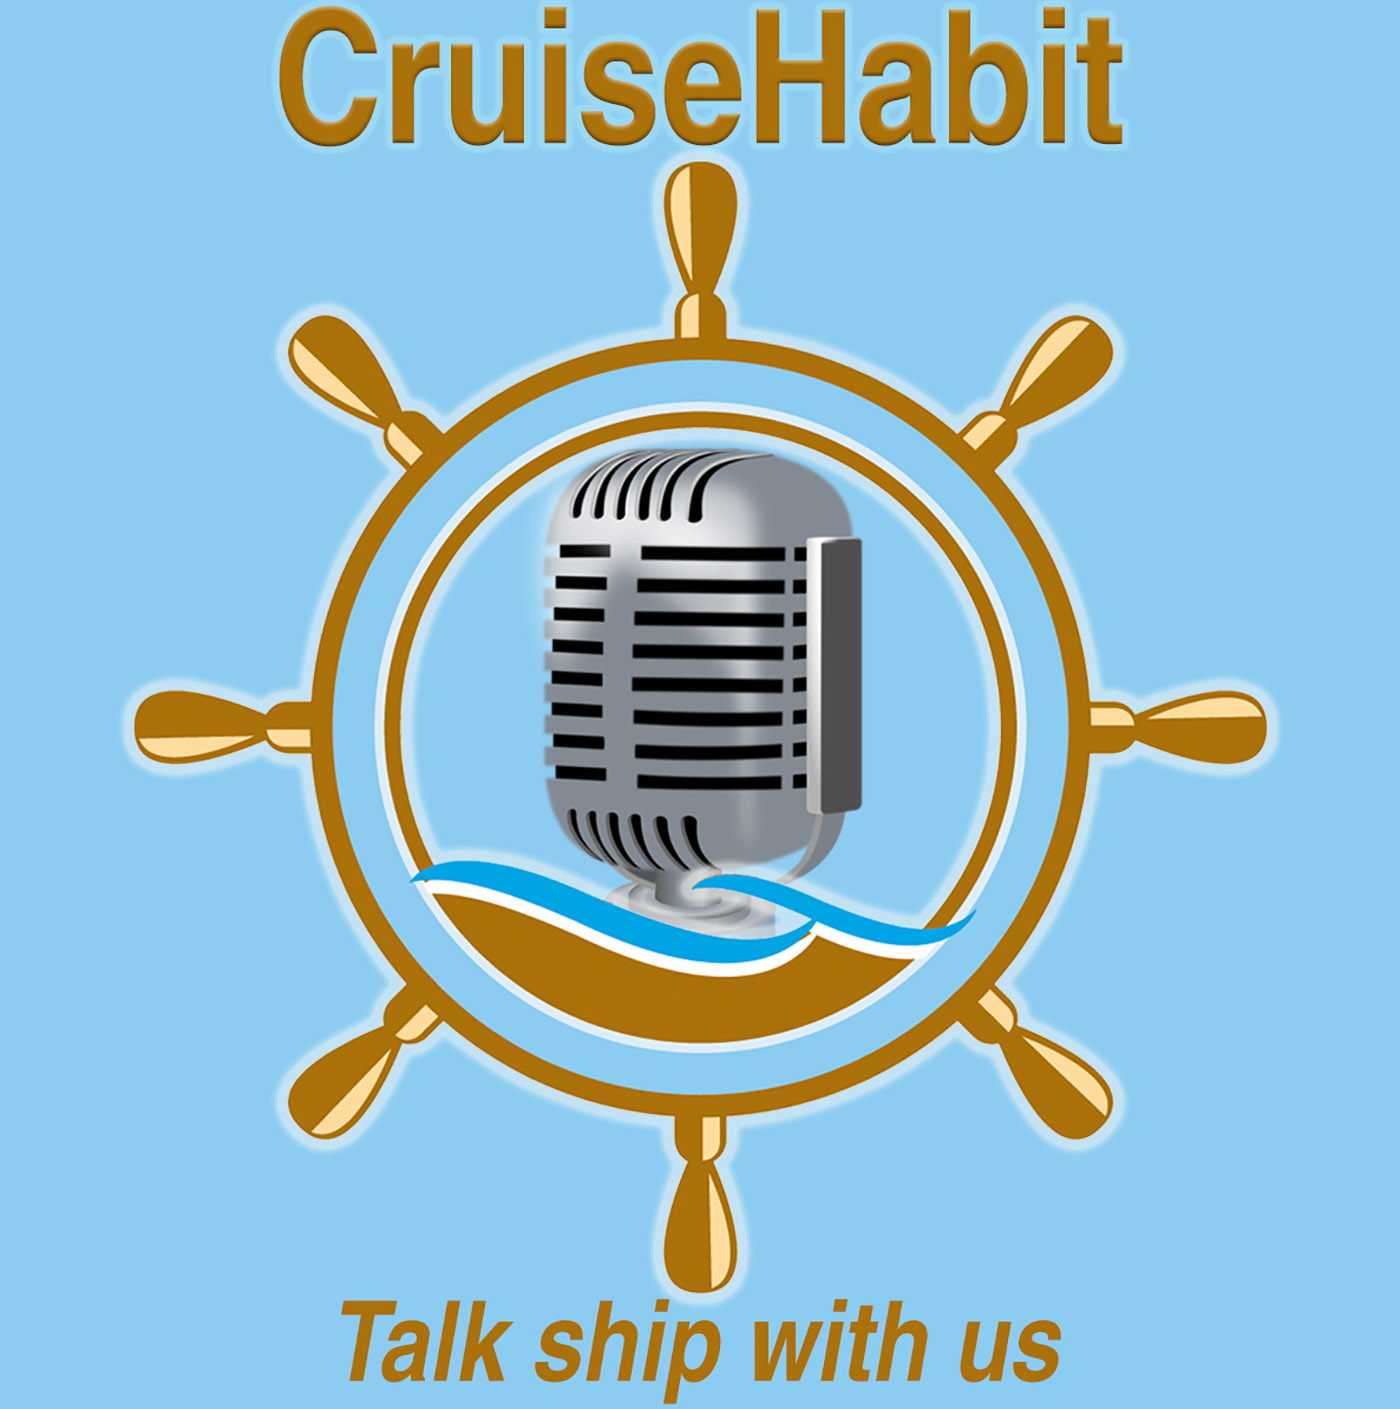 CruiseHabit Podcast - Cruise Info & Ship Talk